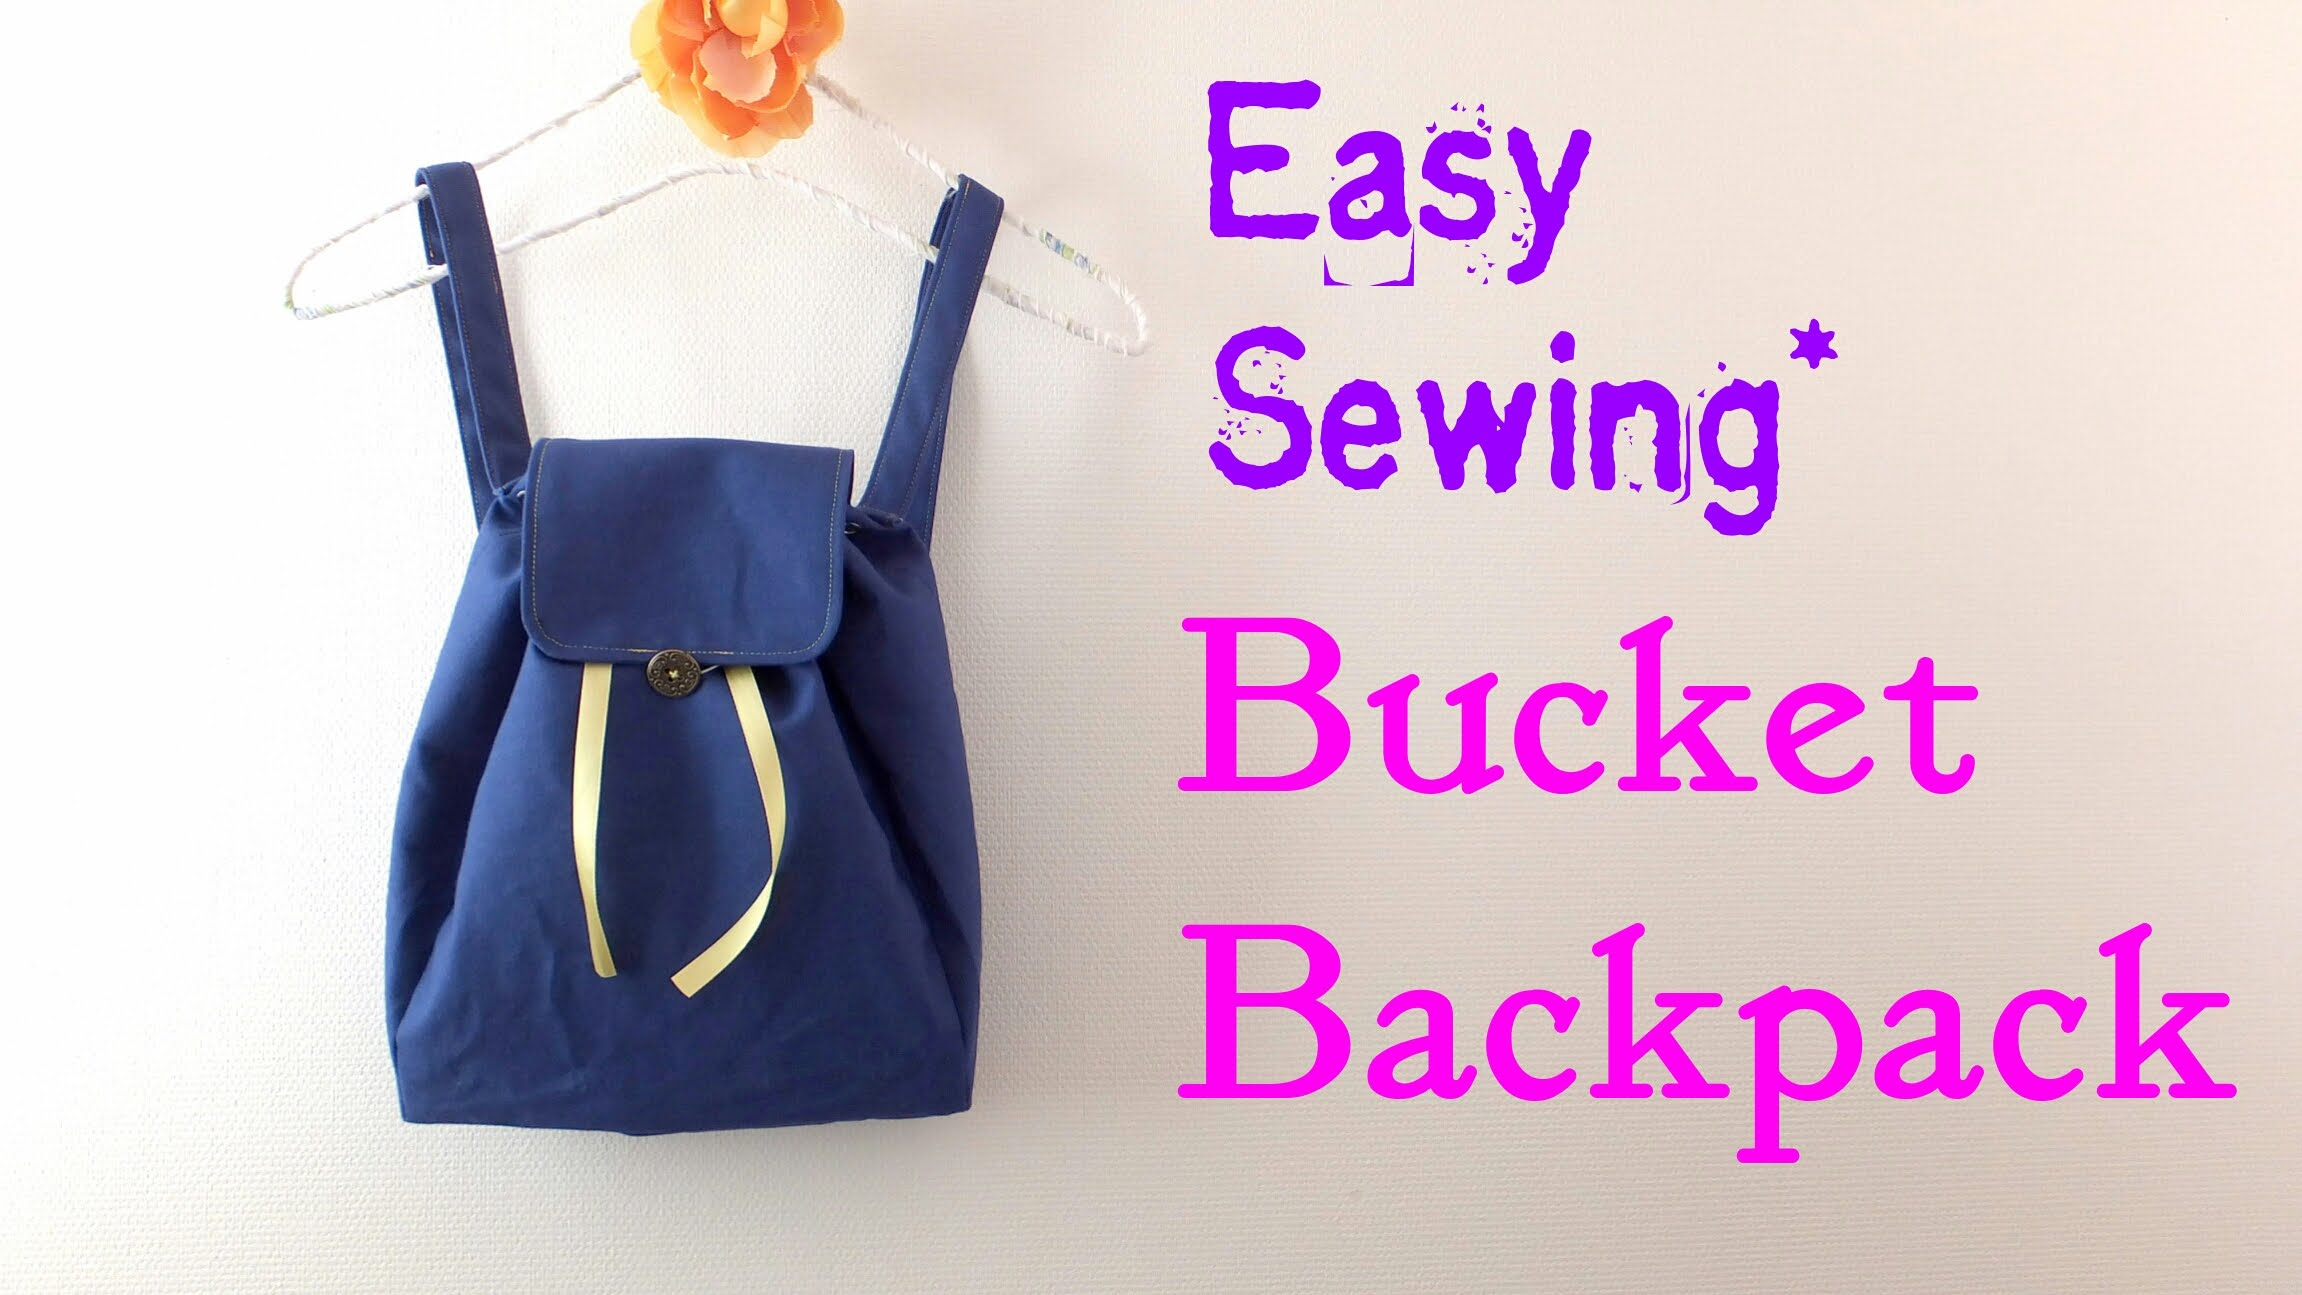 Easy bucket backpack